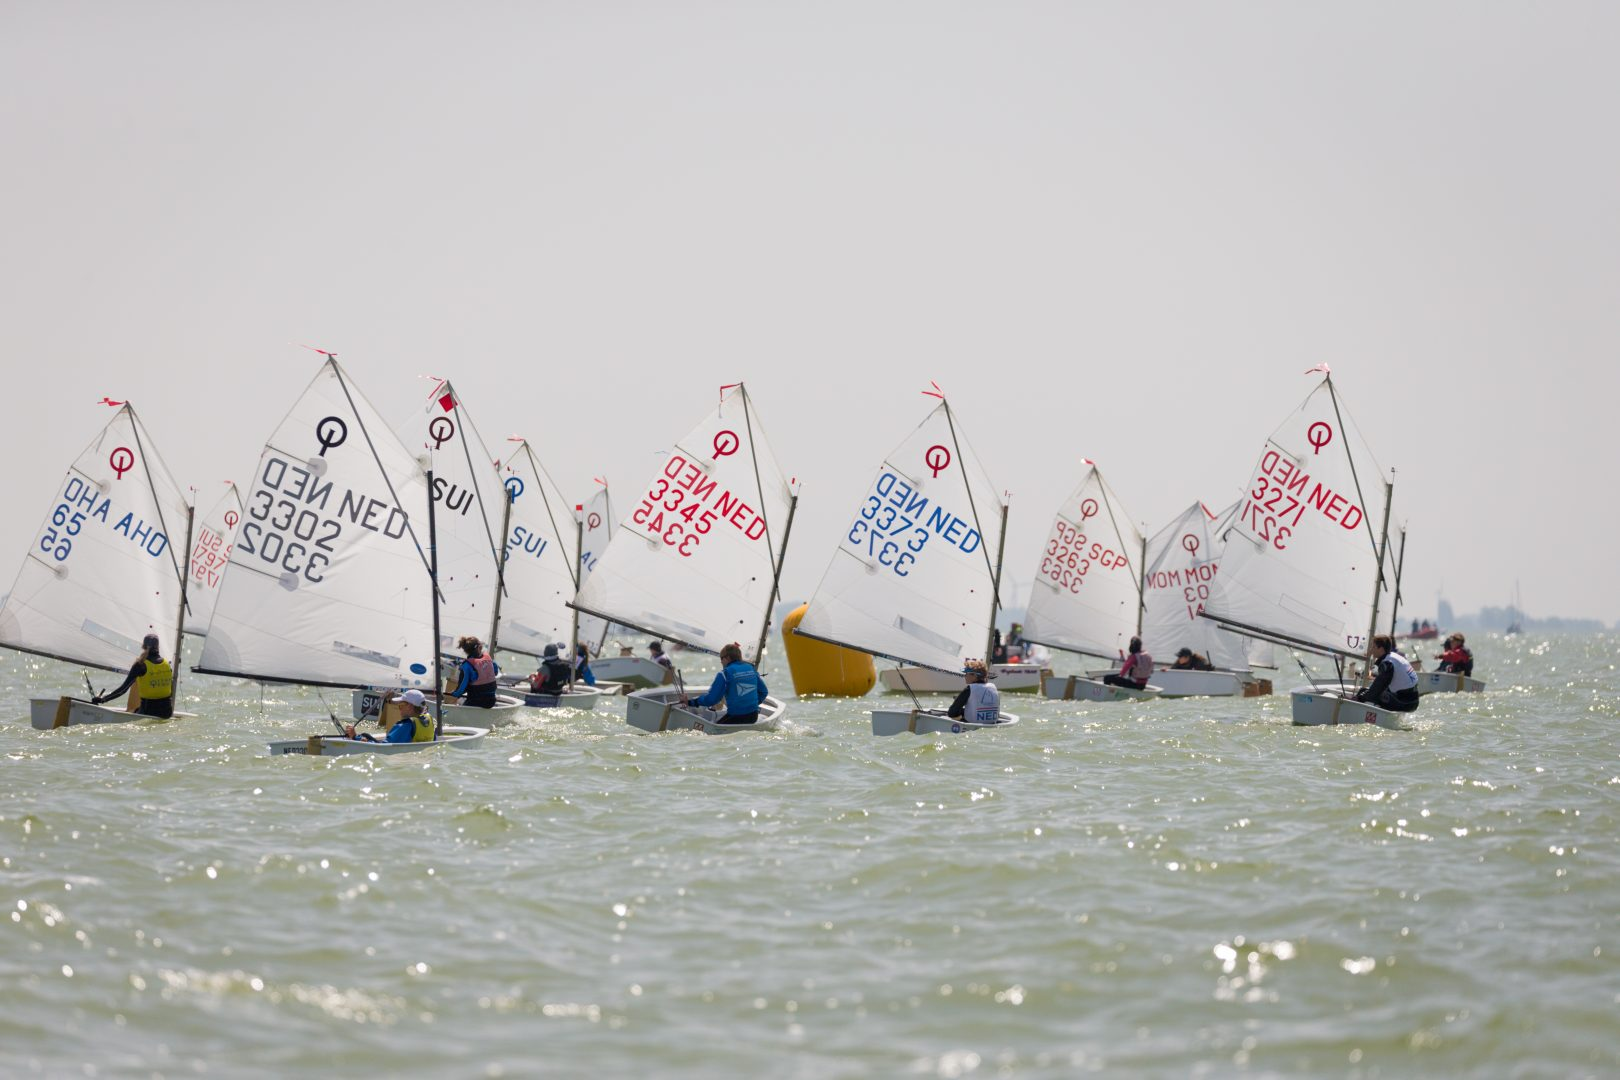 Optimist, Laser, 29er, Nacra 15, var. classes - Dutch Youth Regatta - Workum NED - Day 3